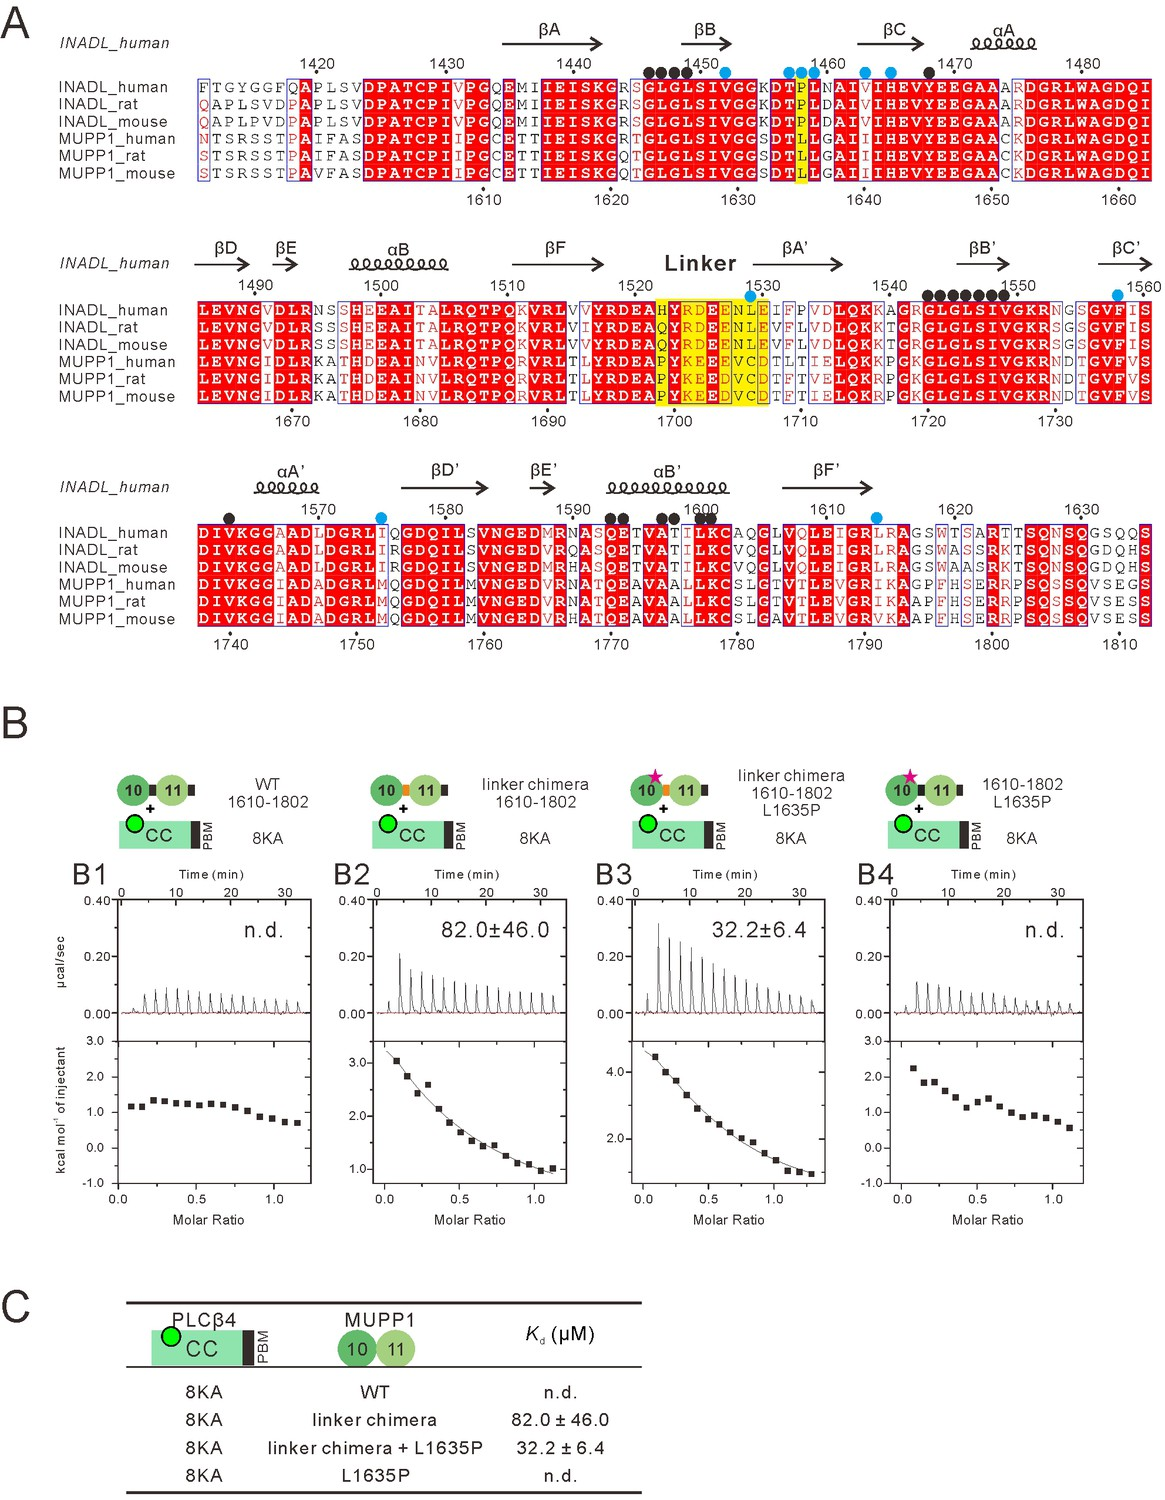 Figures and data in An unexpected INAD PDZ tandem-mediated ...